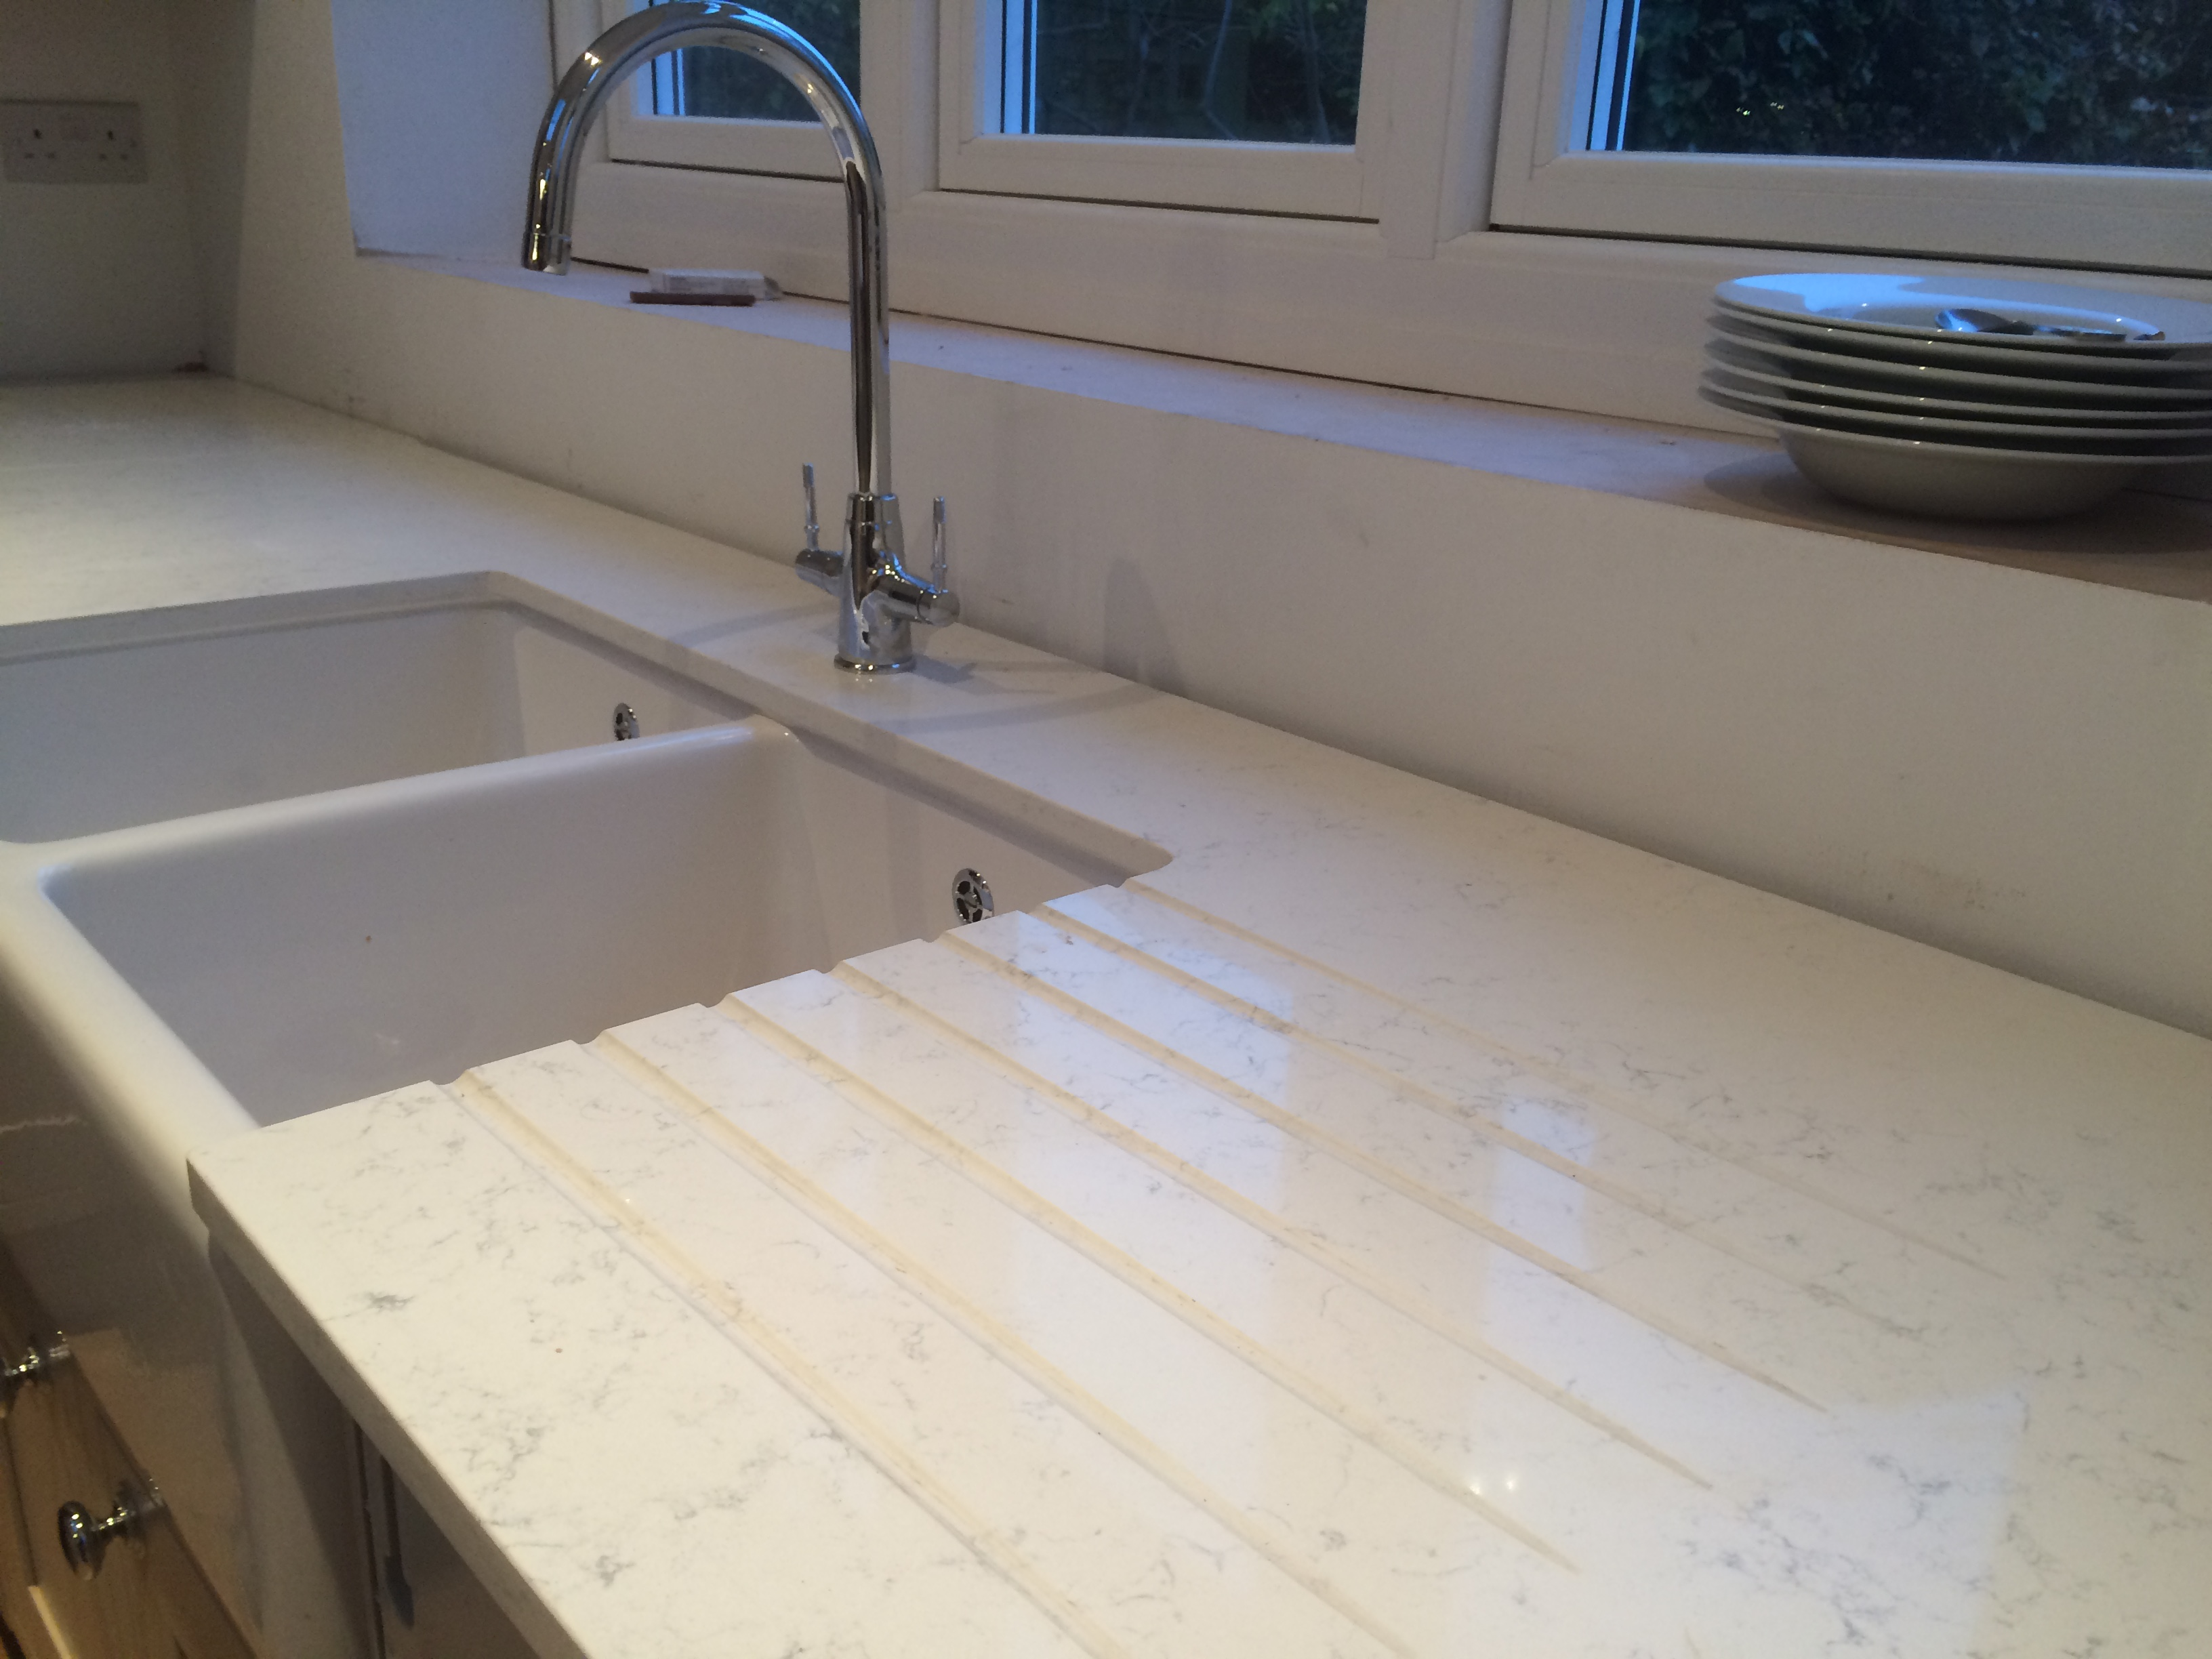 Roktops- Quartz worktop